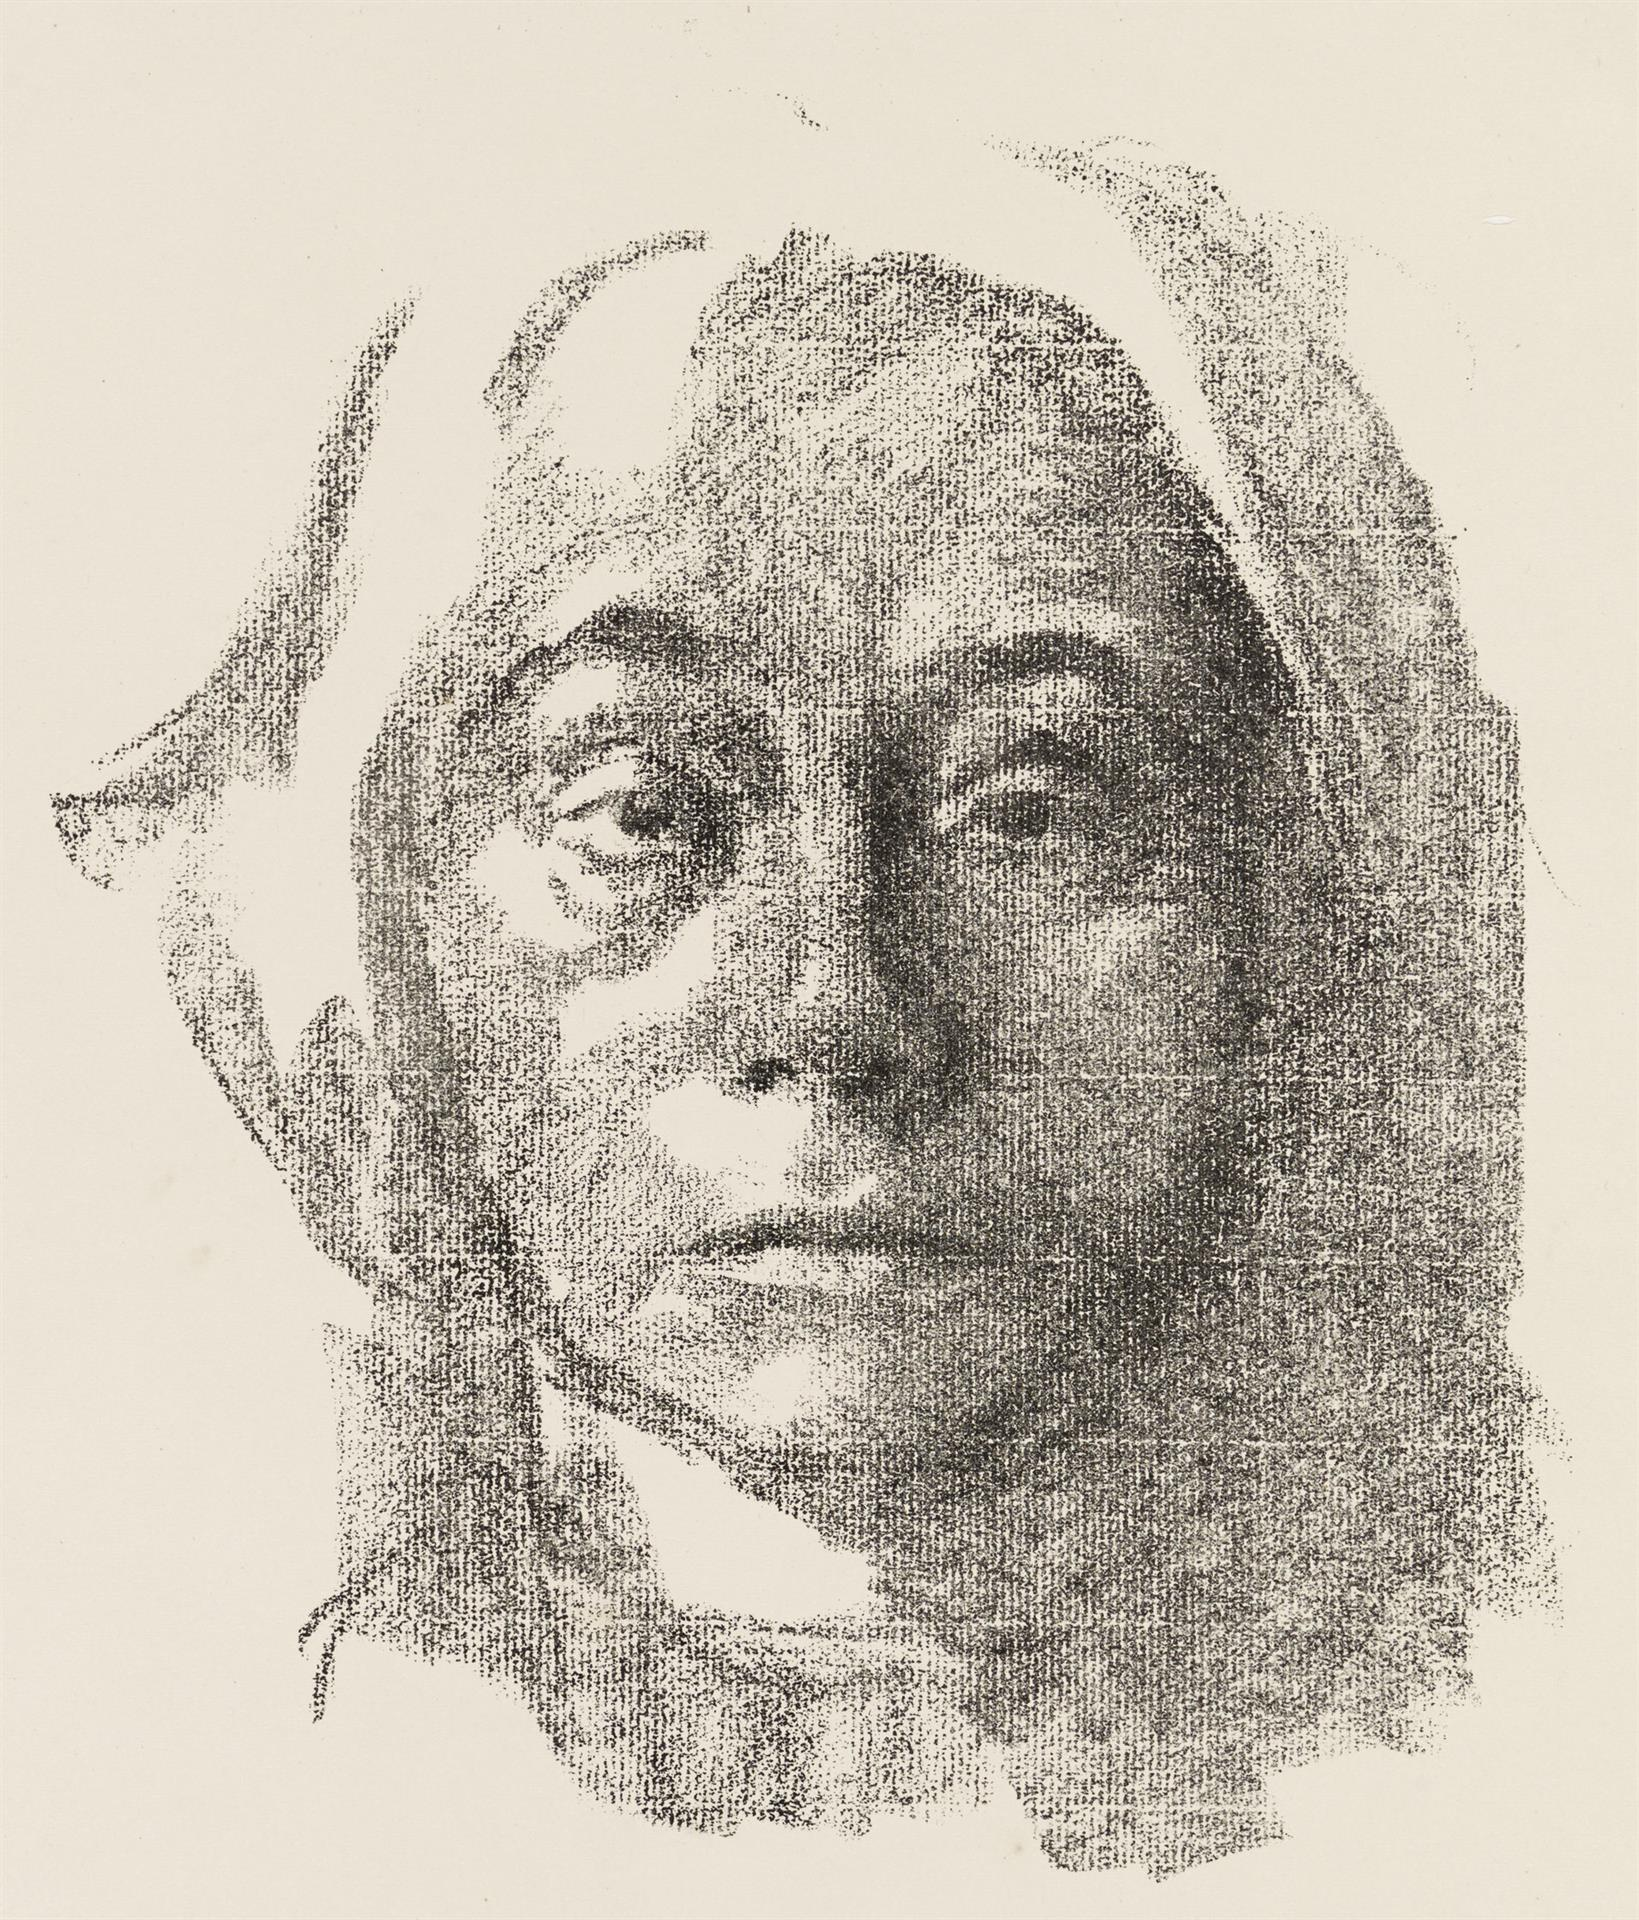 Käthe Kollwitz, Self-portrait, 1915, crayon lithograph (transfer), Kn 134 c, Cologne Kollwitz Collection © Käthe Kollwitz Museum Köln